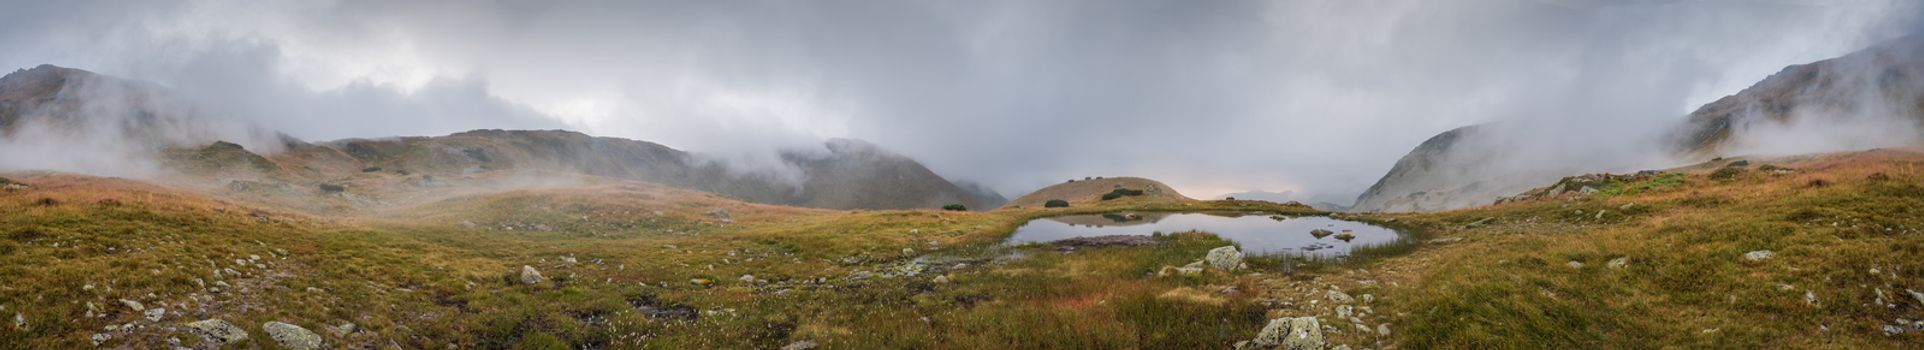 Small Tarn with Fog in Mountains at Sunset